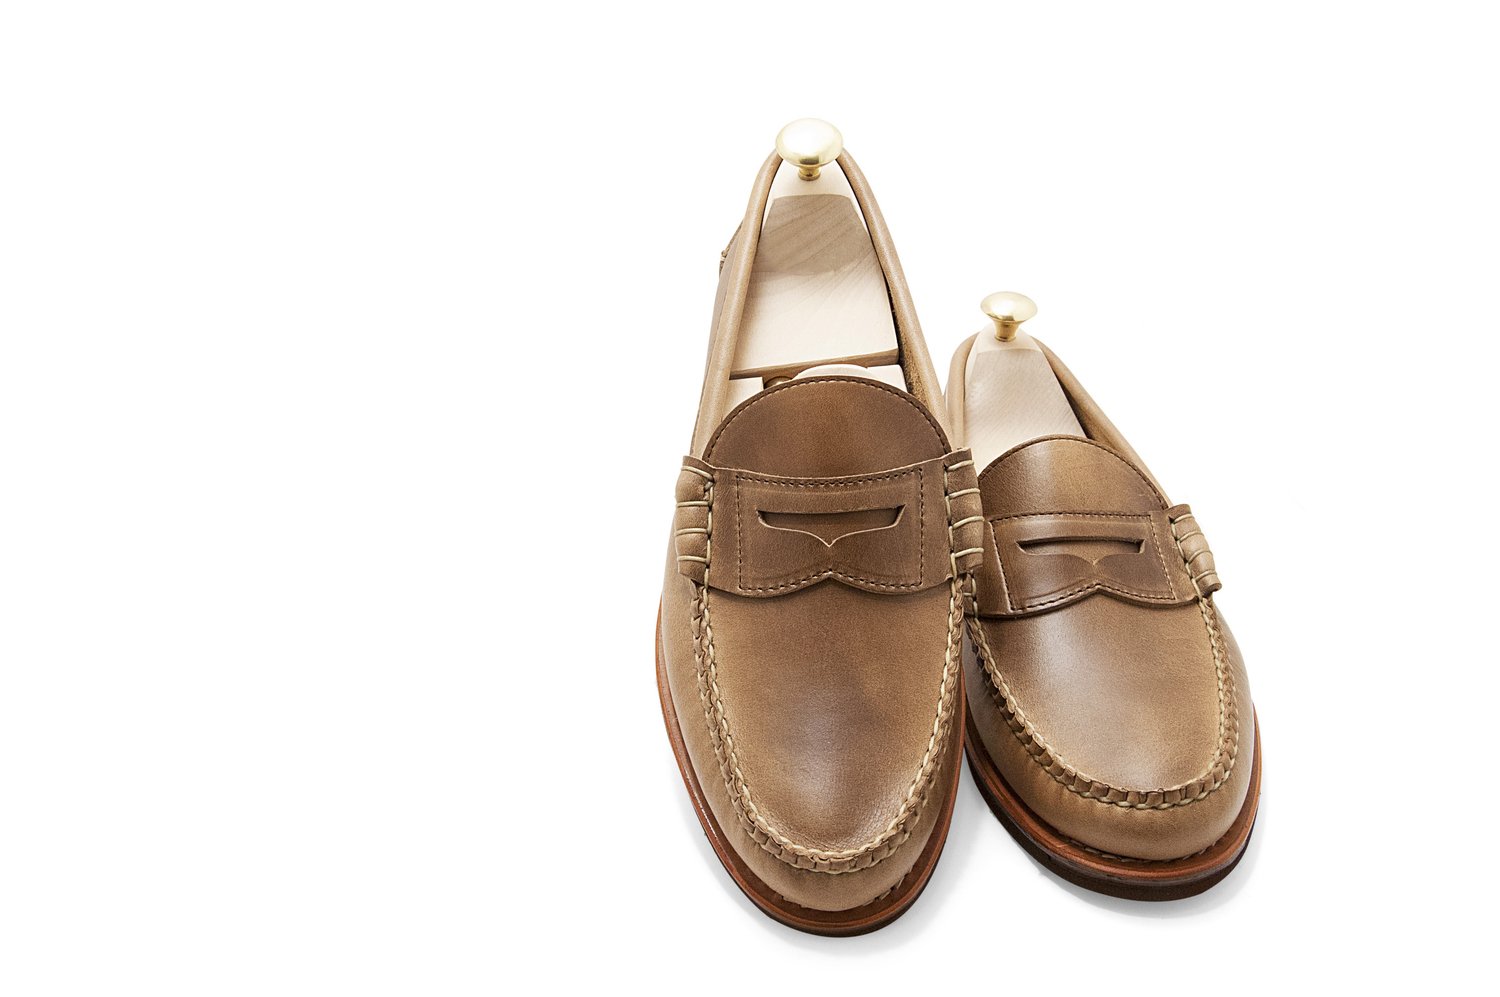 f6285baf24 Rancourt Beefroll Penny Loafer – Carolina Natural Chromexcel — Sky Valet  Shoes